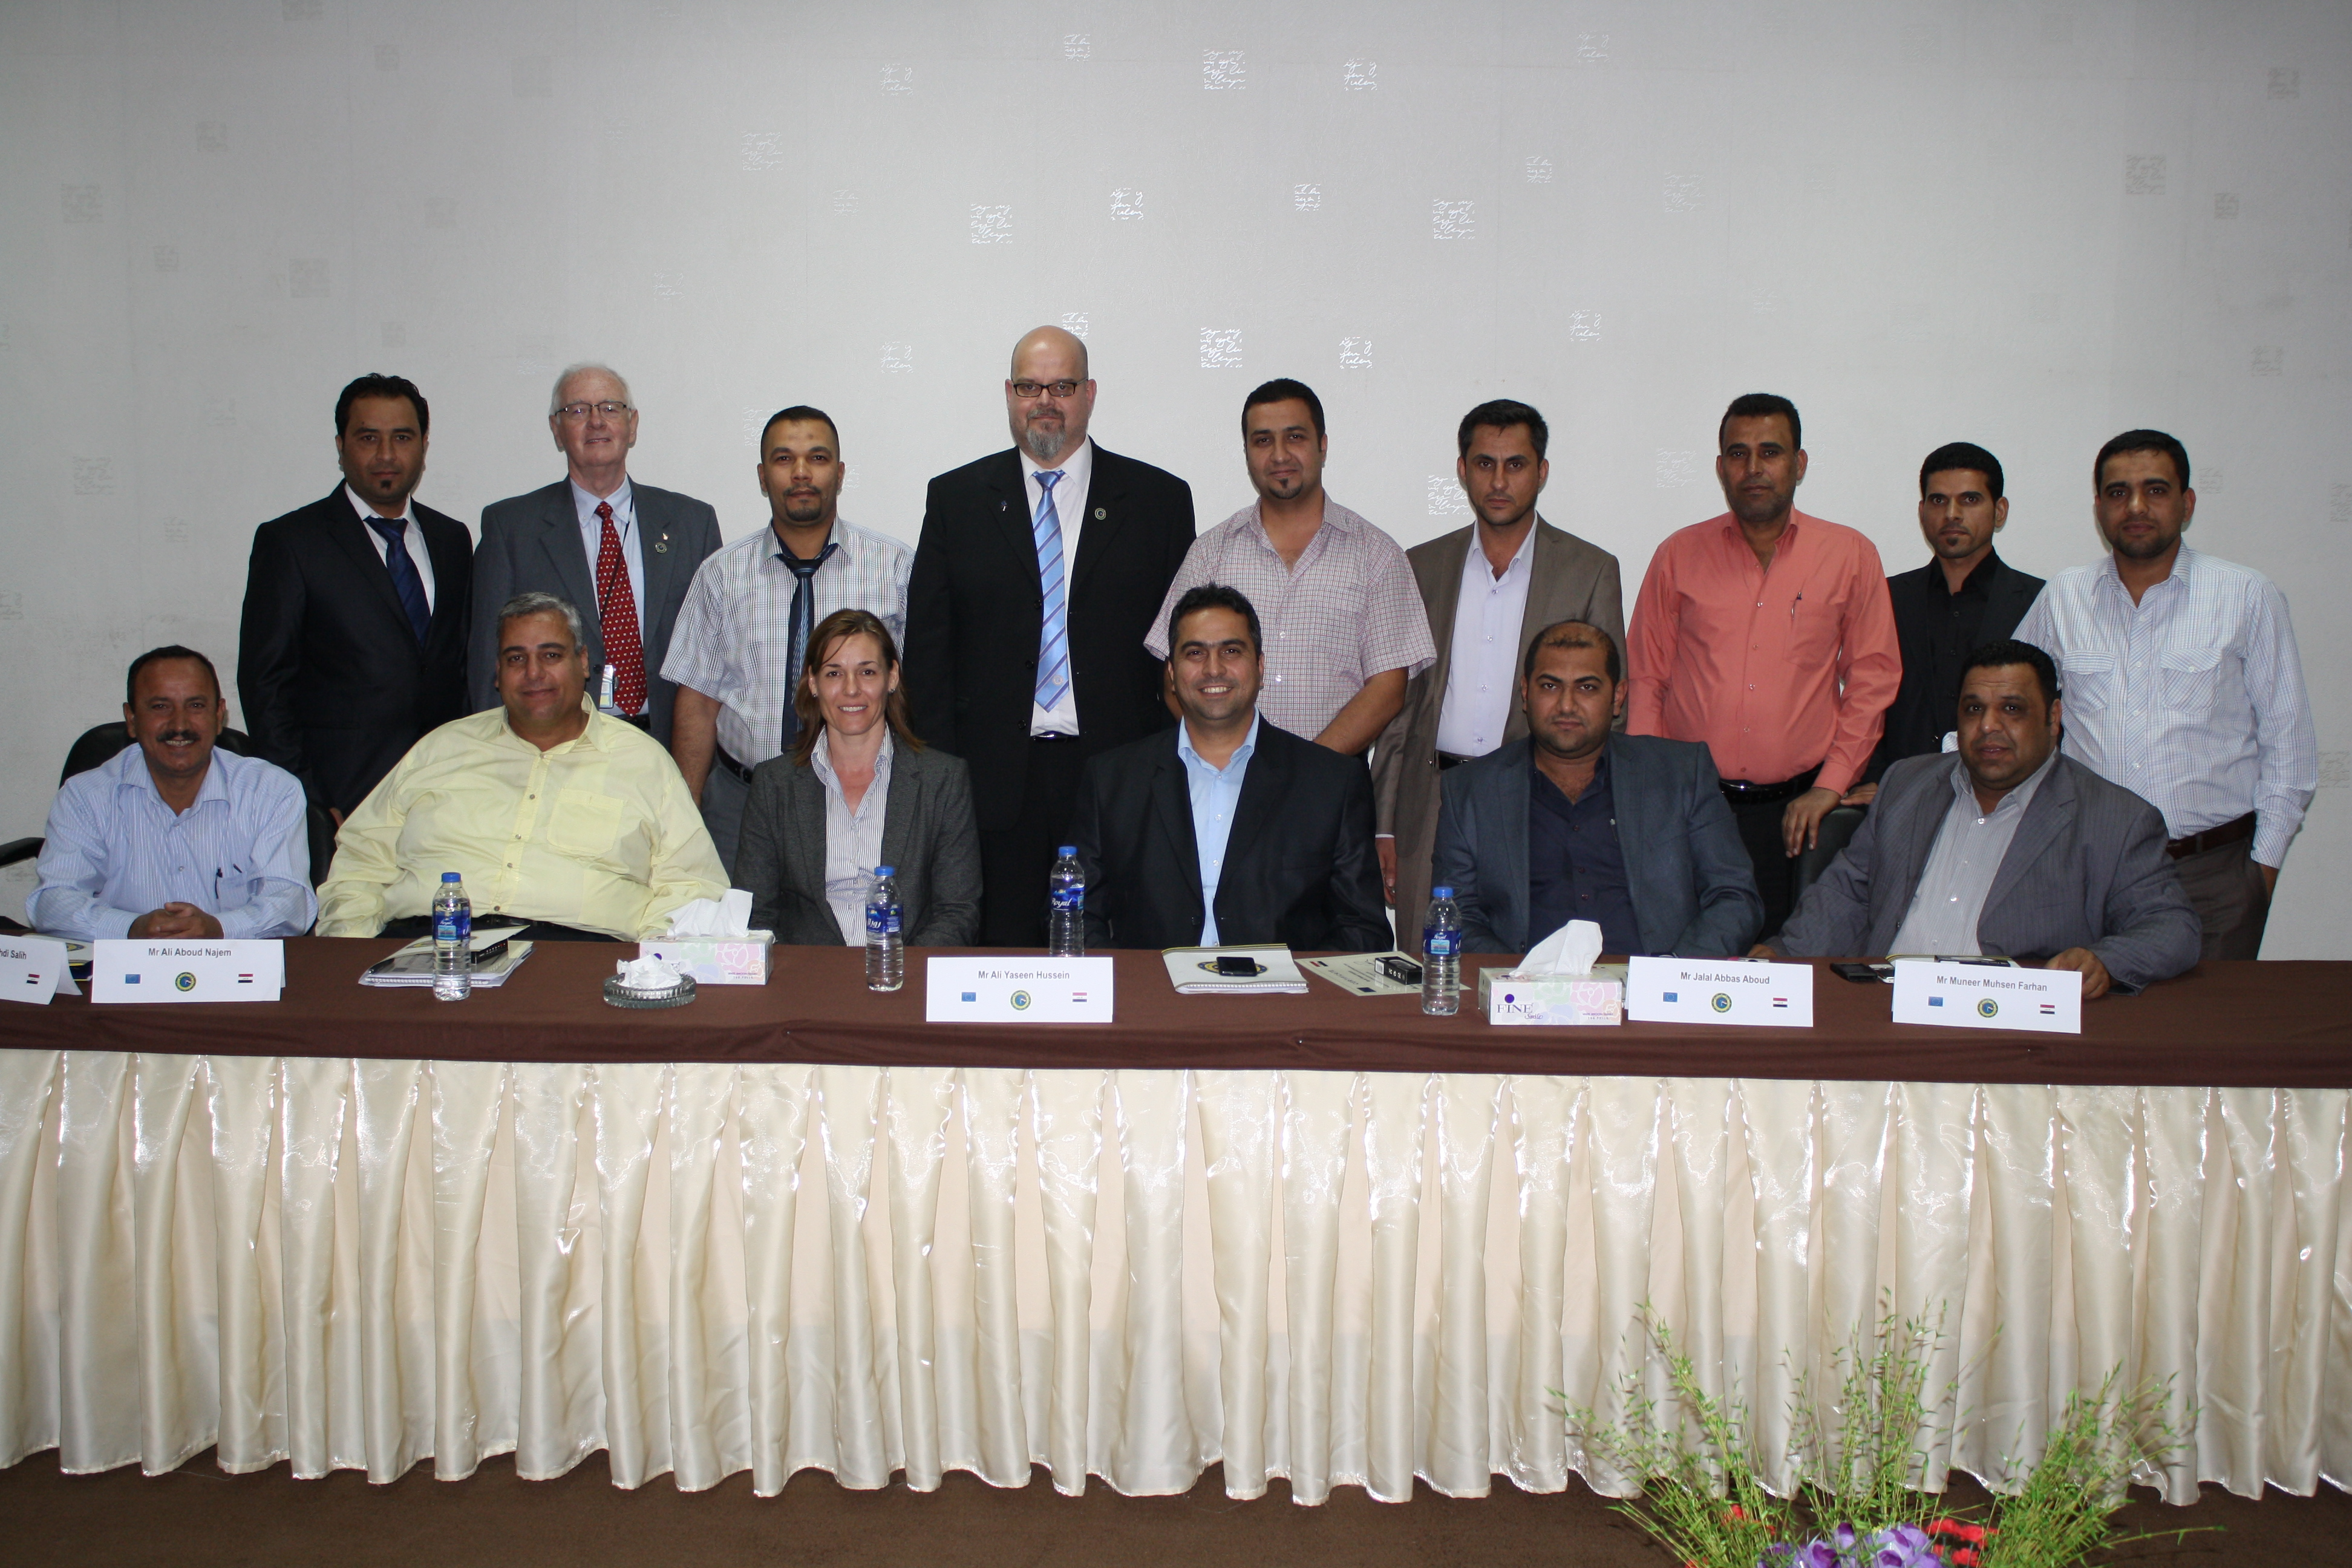 Falah Mahdi Salih (seated on left) and Ali Aboud Najem (next, in yellow shirt) with course participants and EJL Experts Alison Stables (next) and, at rear, William Irvine (2nd from left) and Matti Virkunnen (4th from left)